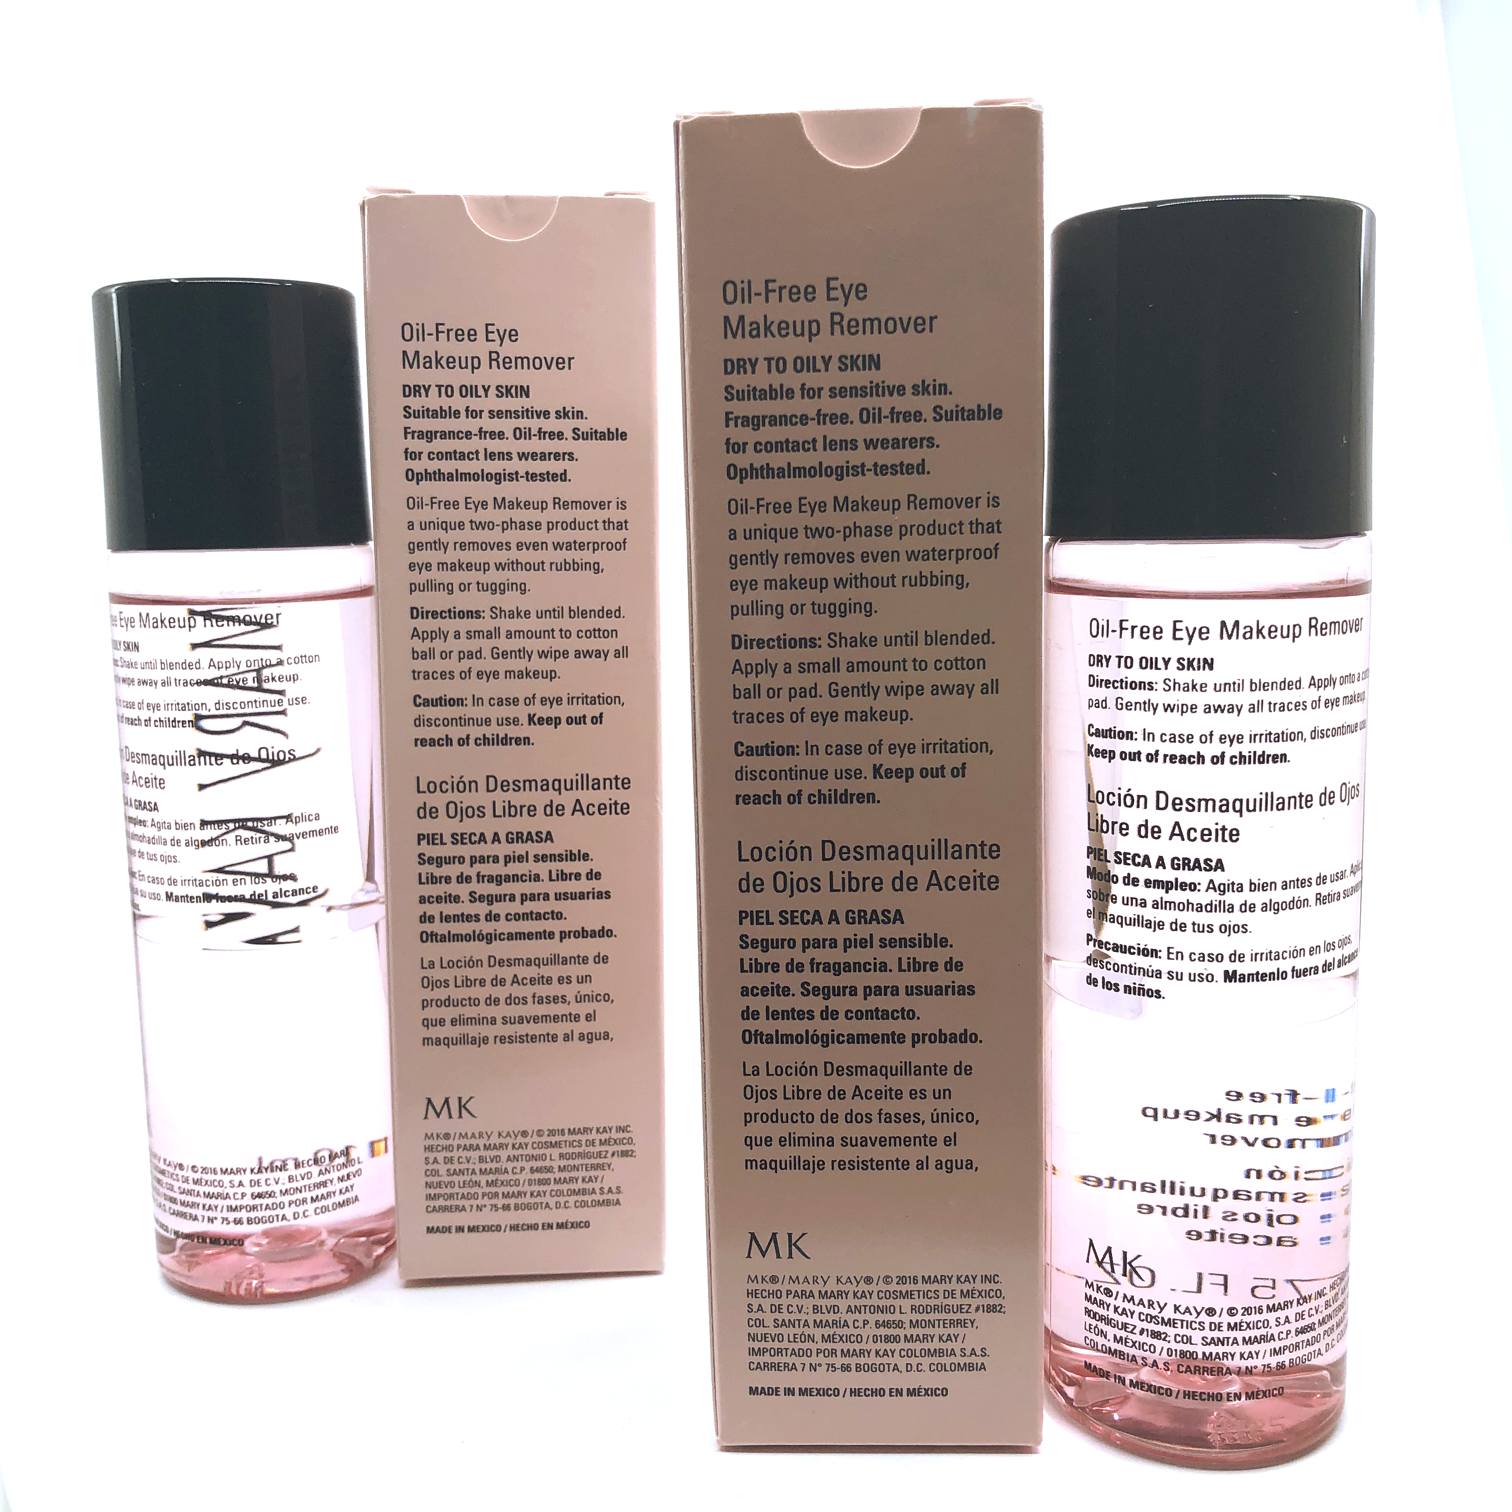 Mary Kay Oil-Free Eye Makeup Remover- 3.75 fl. oz. (2 PACK) FREE SHIPPING 5